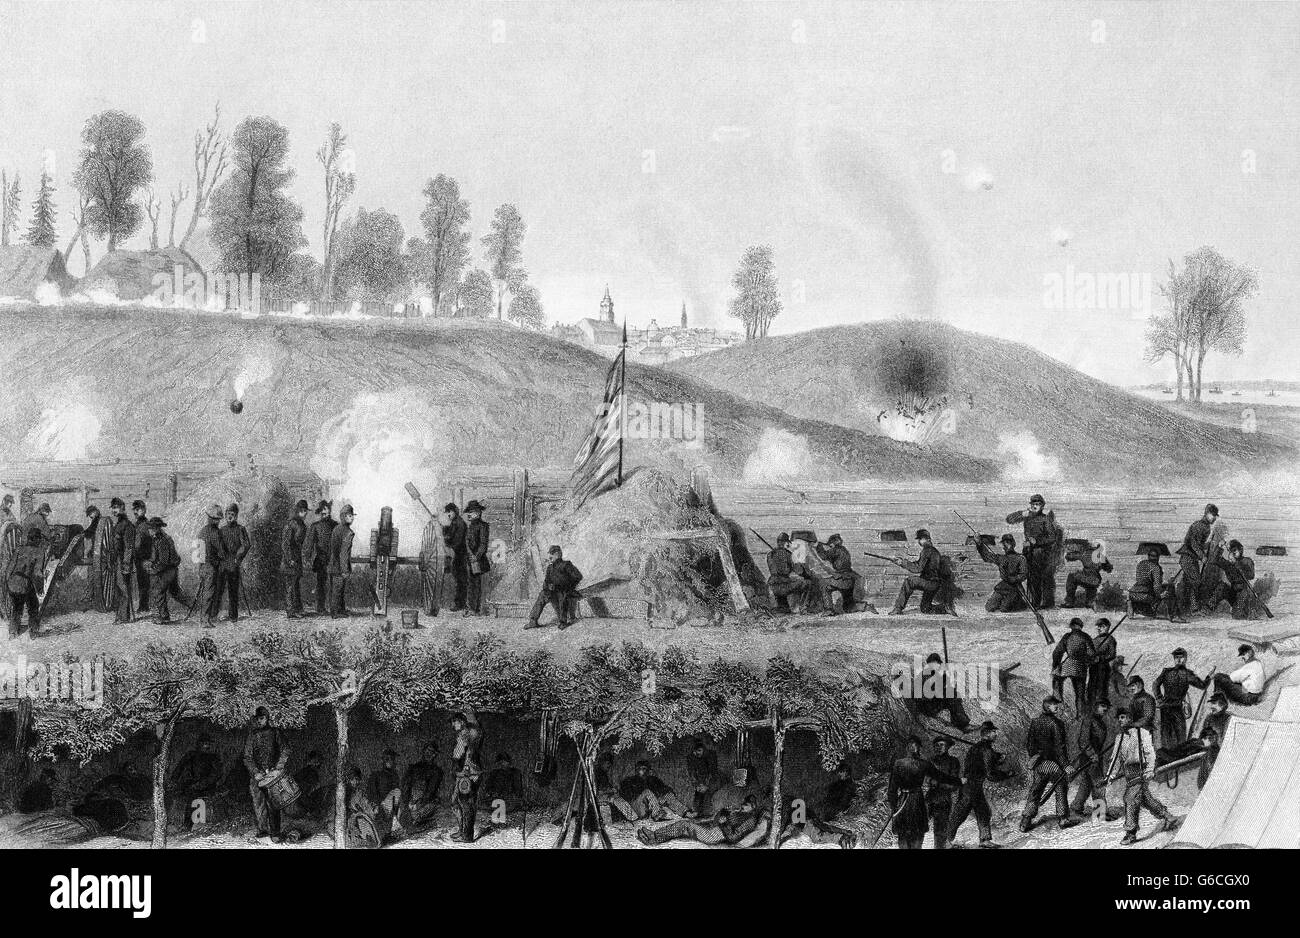 1860s MAY JUNE JULY 1863 UNION FORCES SIEGE OF CONFEDERATED DEFENDING VICKSBURG MISSISSIPPI USA - Stock Image